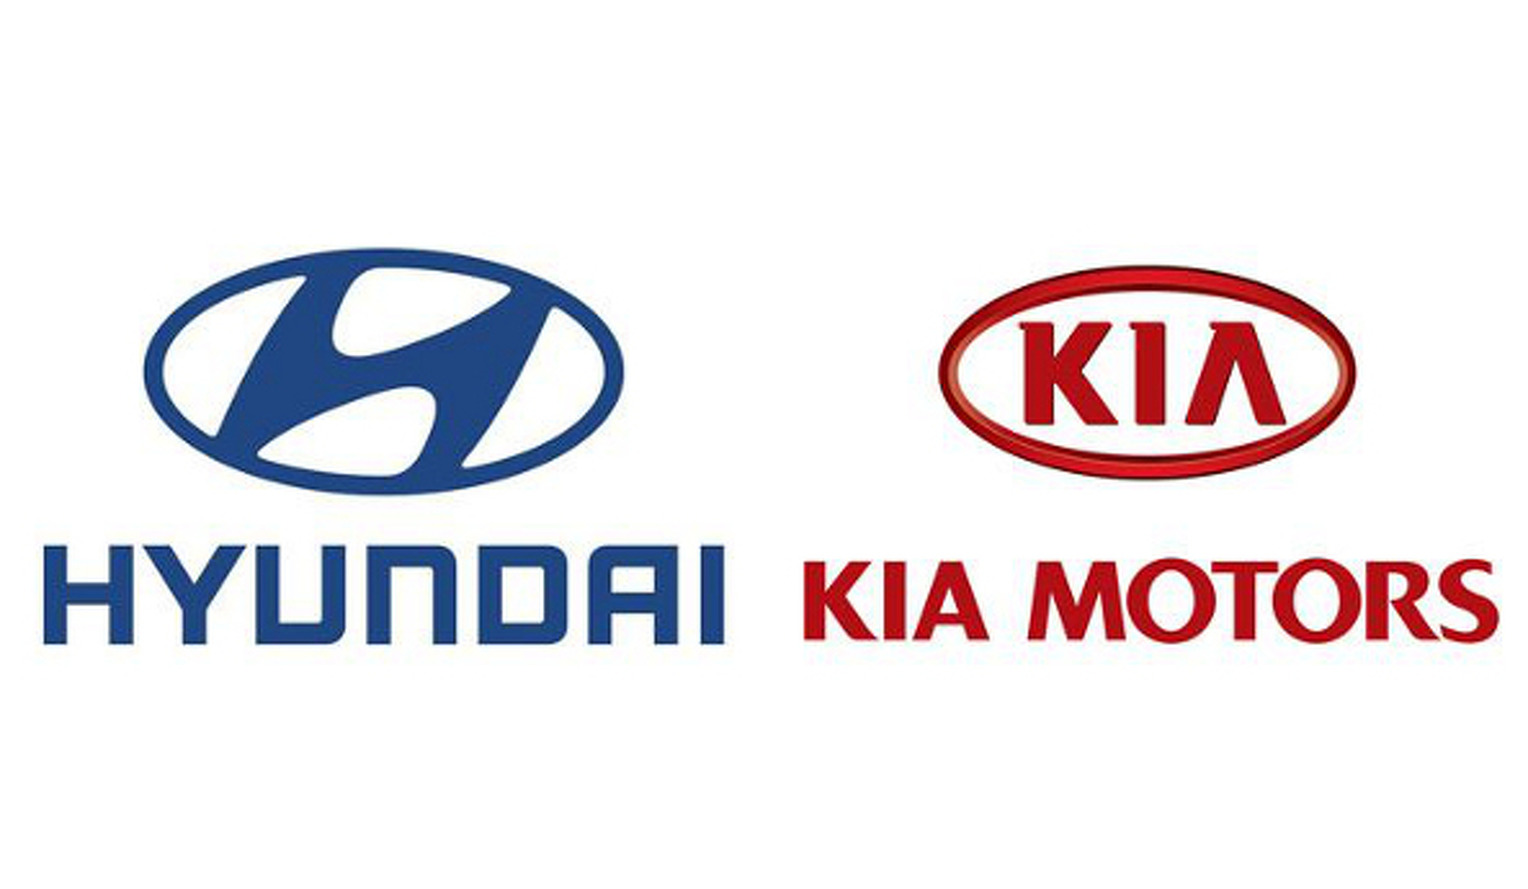 The Hyundai MPG Scandal Gets Worse, Insider Trading Suspected